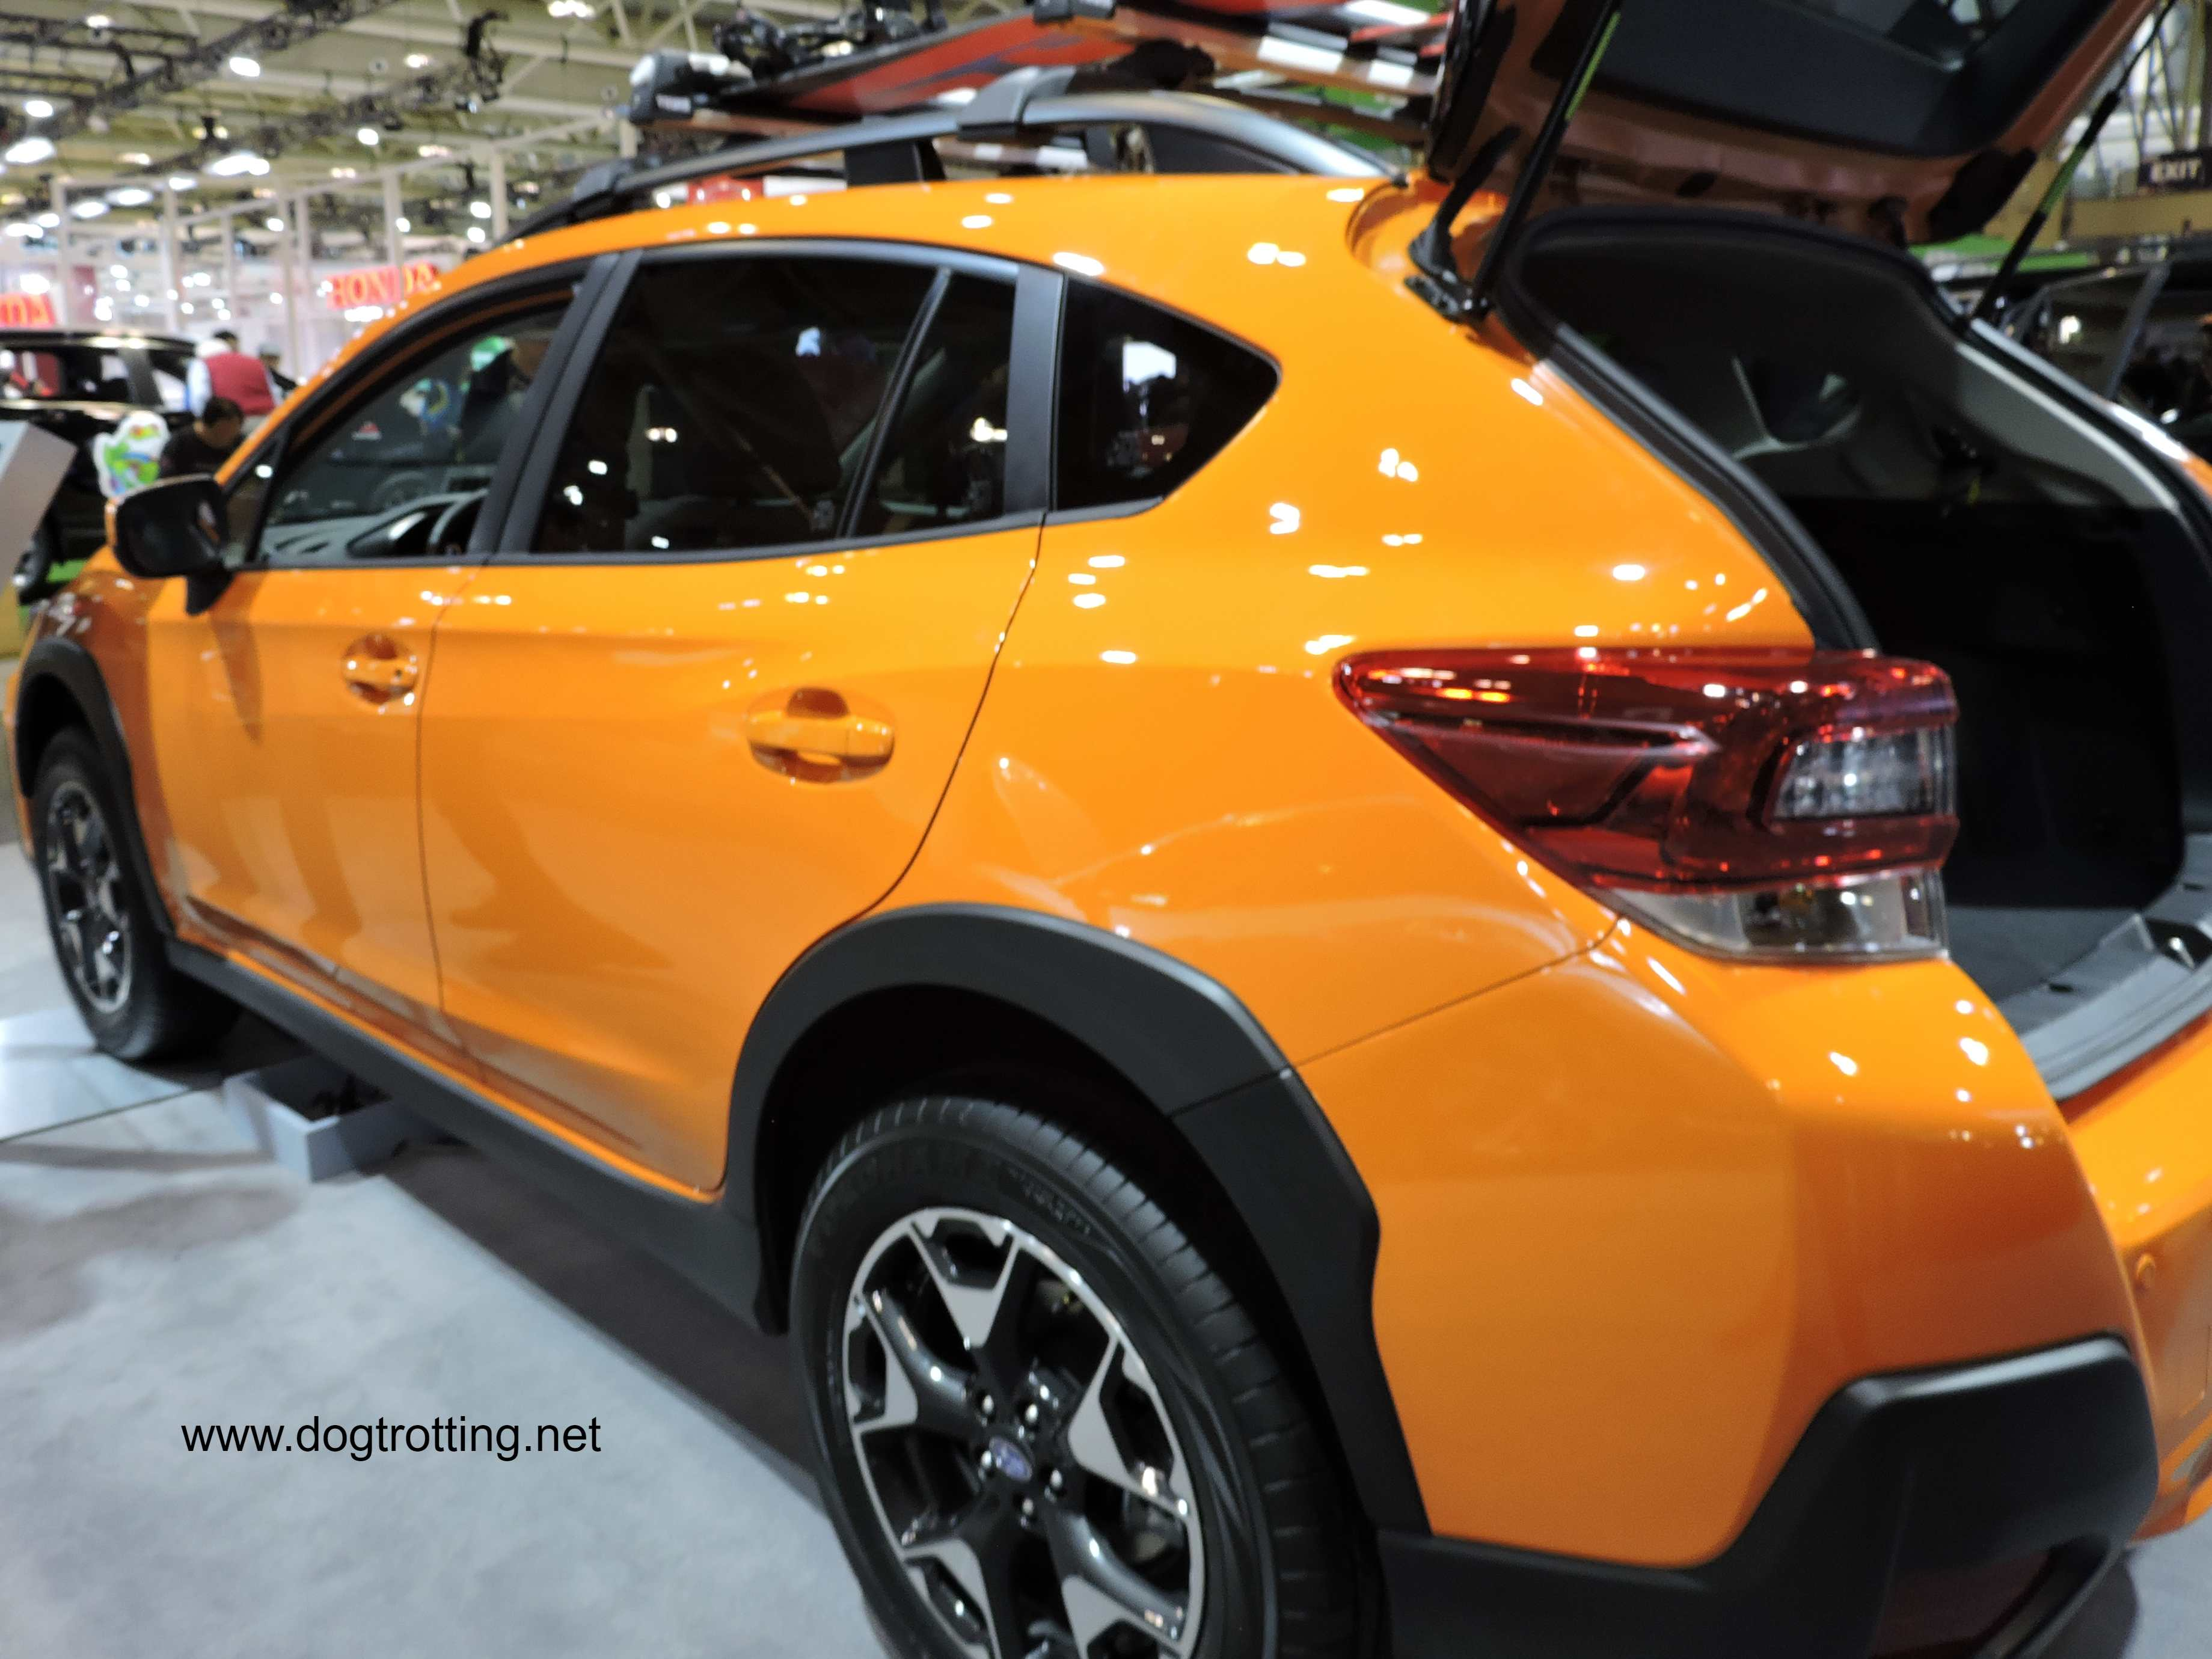 side of yellow Subaru car at auto show